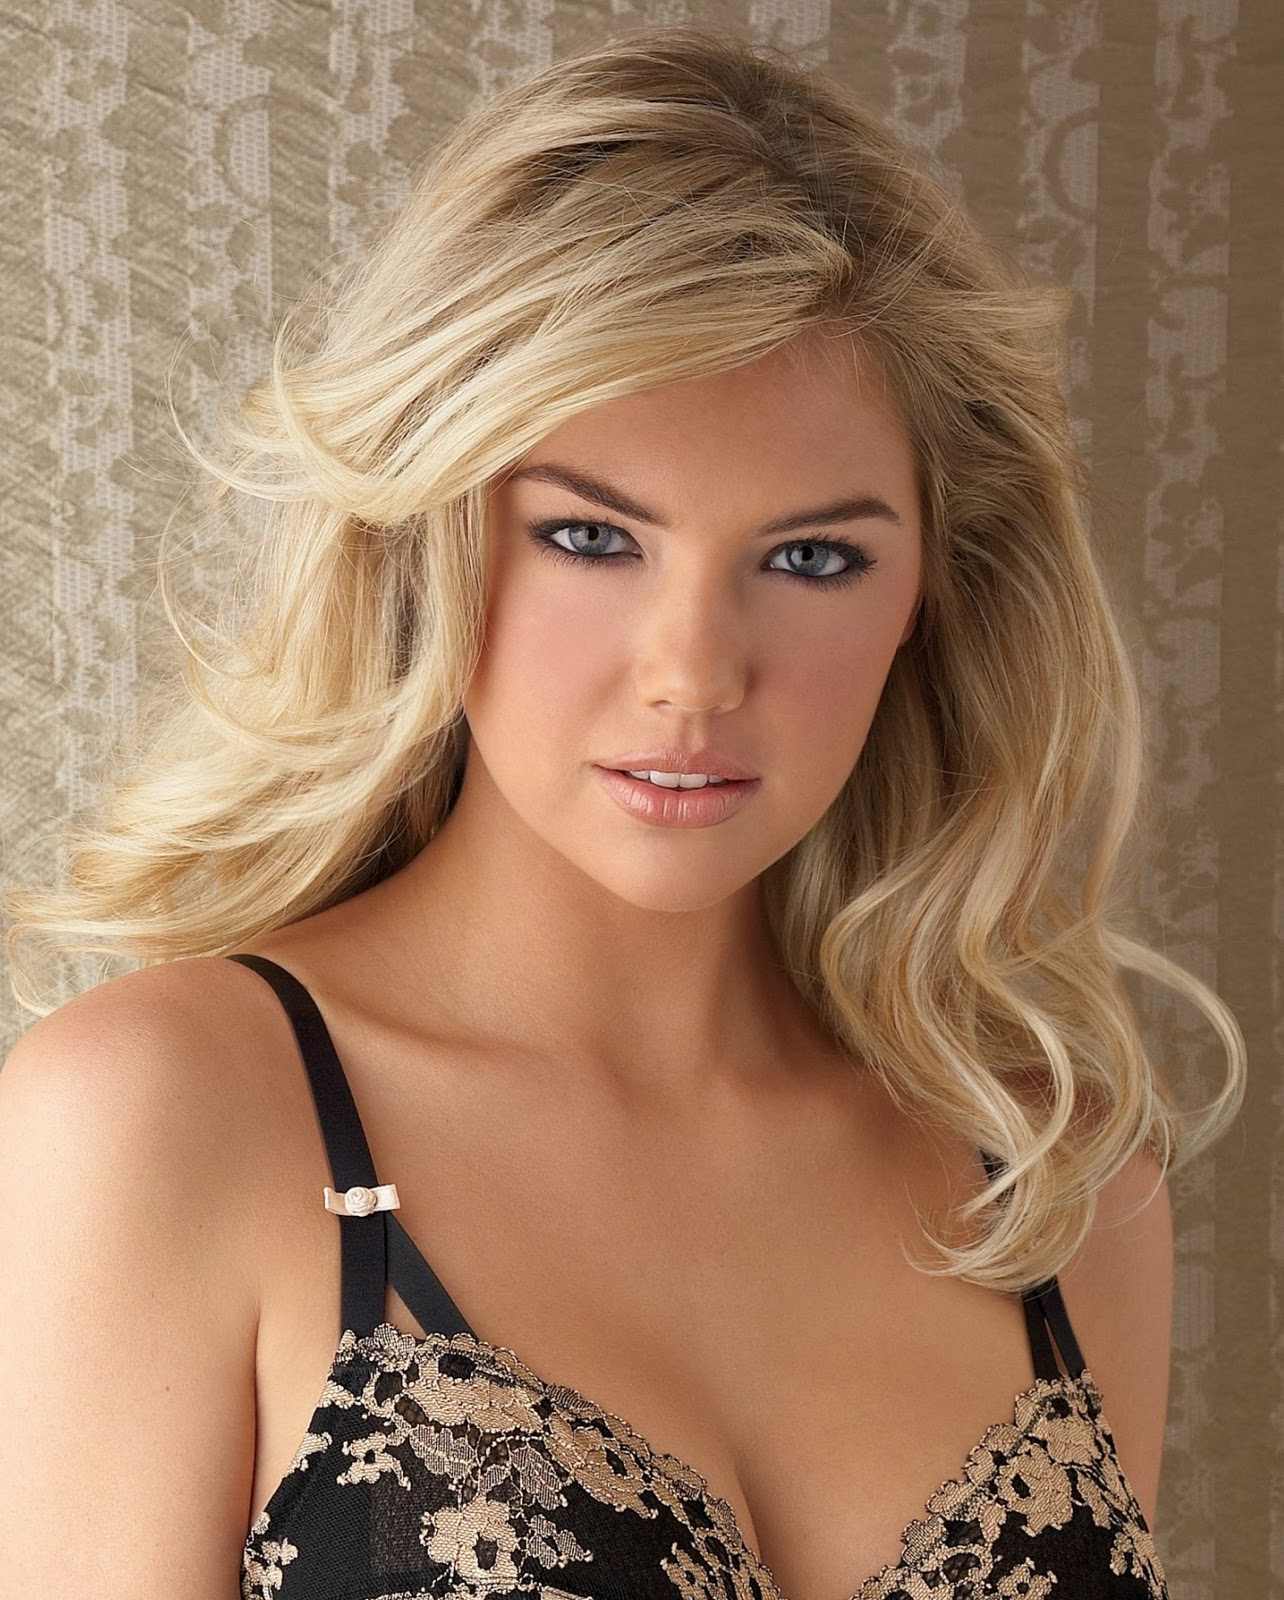 http://2.bp.blogspot.com/-H2V_mc0iccg/UIB8YNloXvI/AAAAAAAAAGU/bVEDe2nzg6E/s1600/Kate+Upton+Bra+Size+And+Measurements.jpg